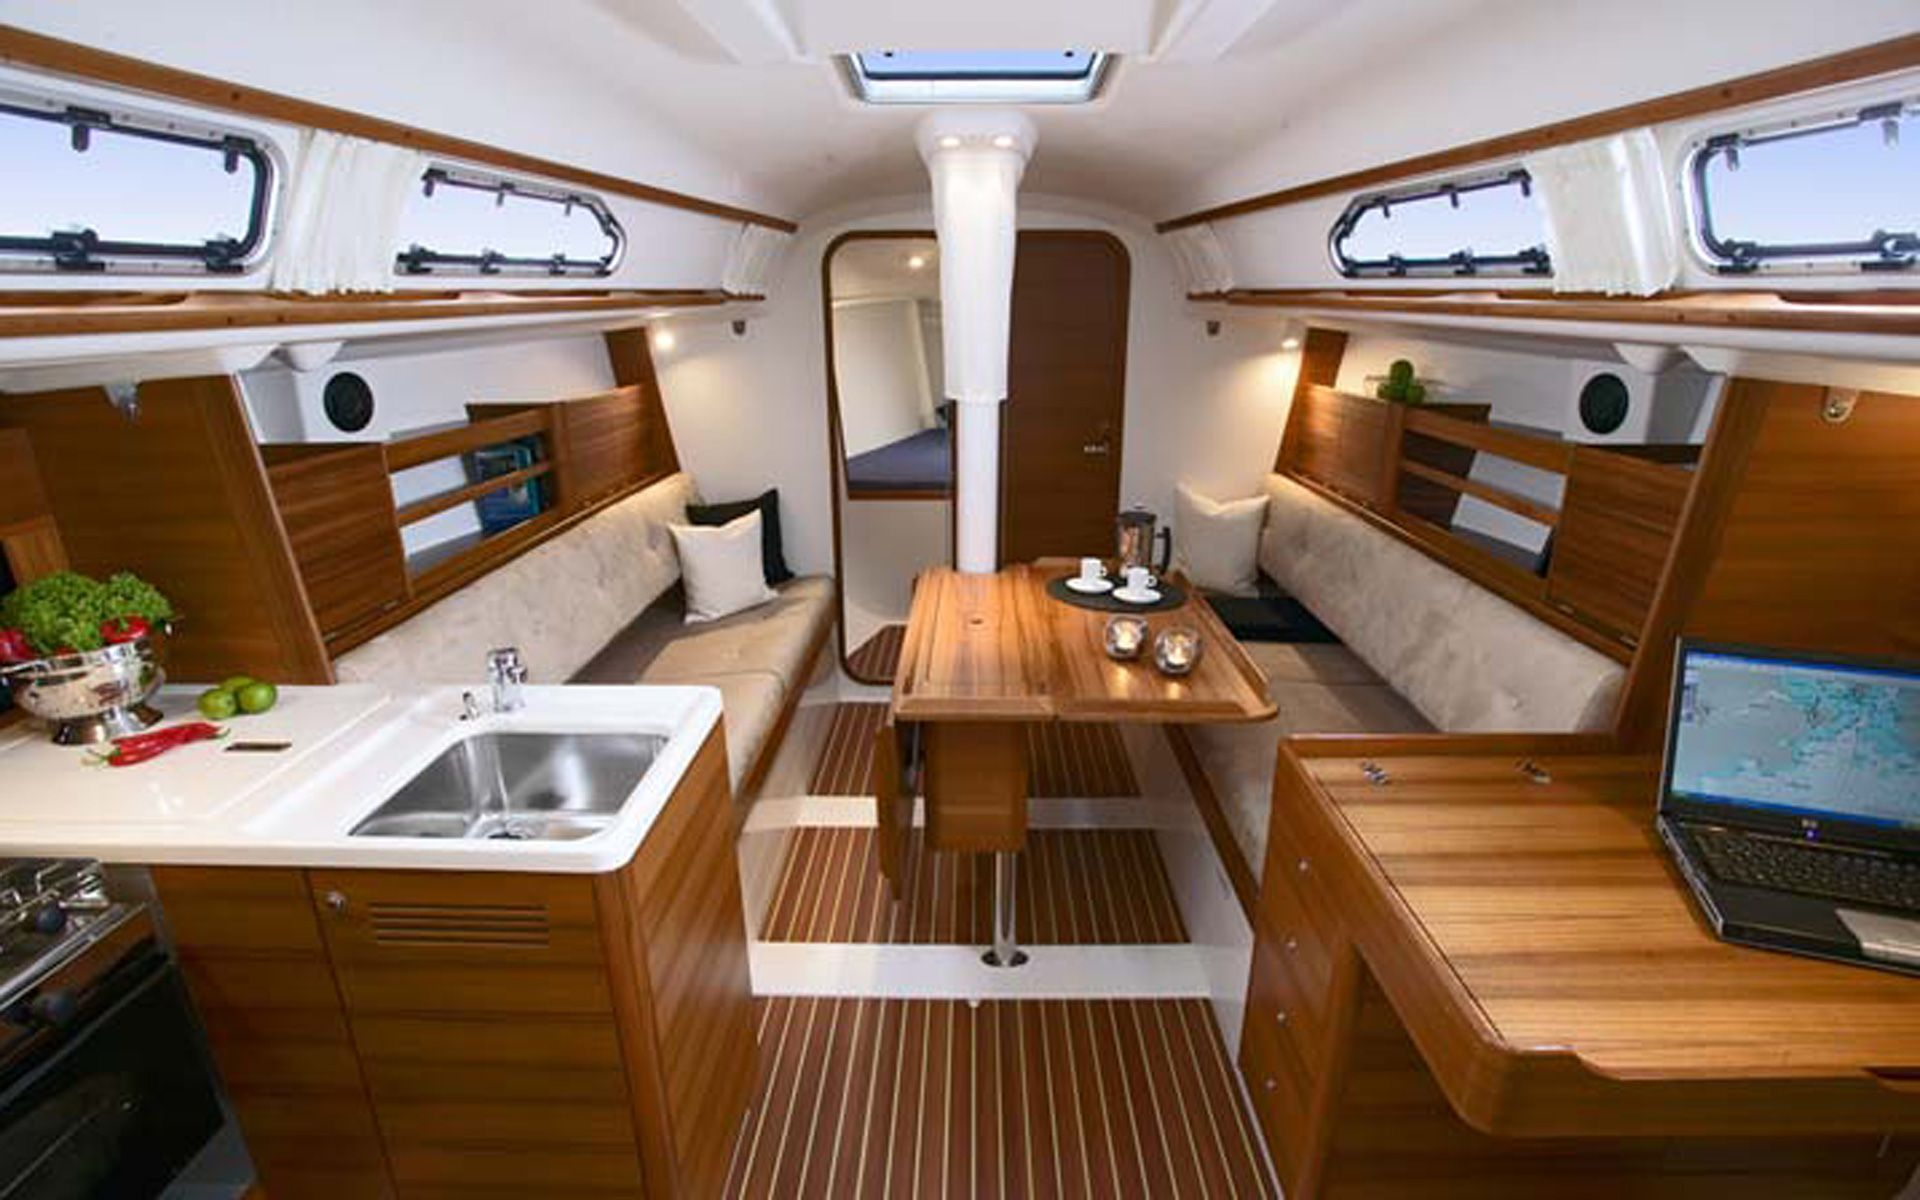 building a sailboat interior google search sailboat interiorboat design serenitynauticalcleansesshipping